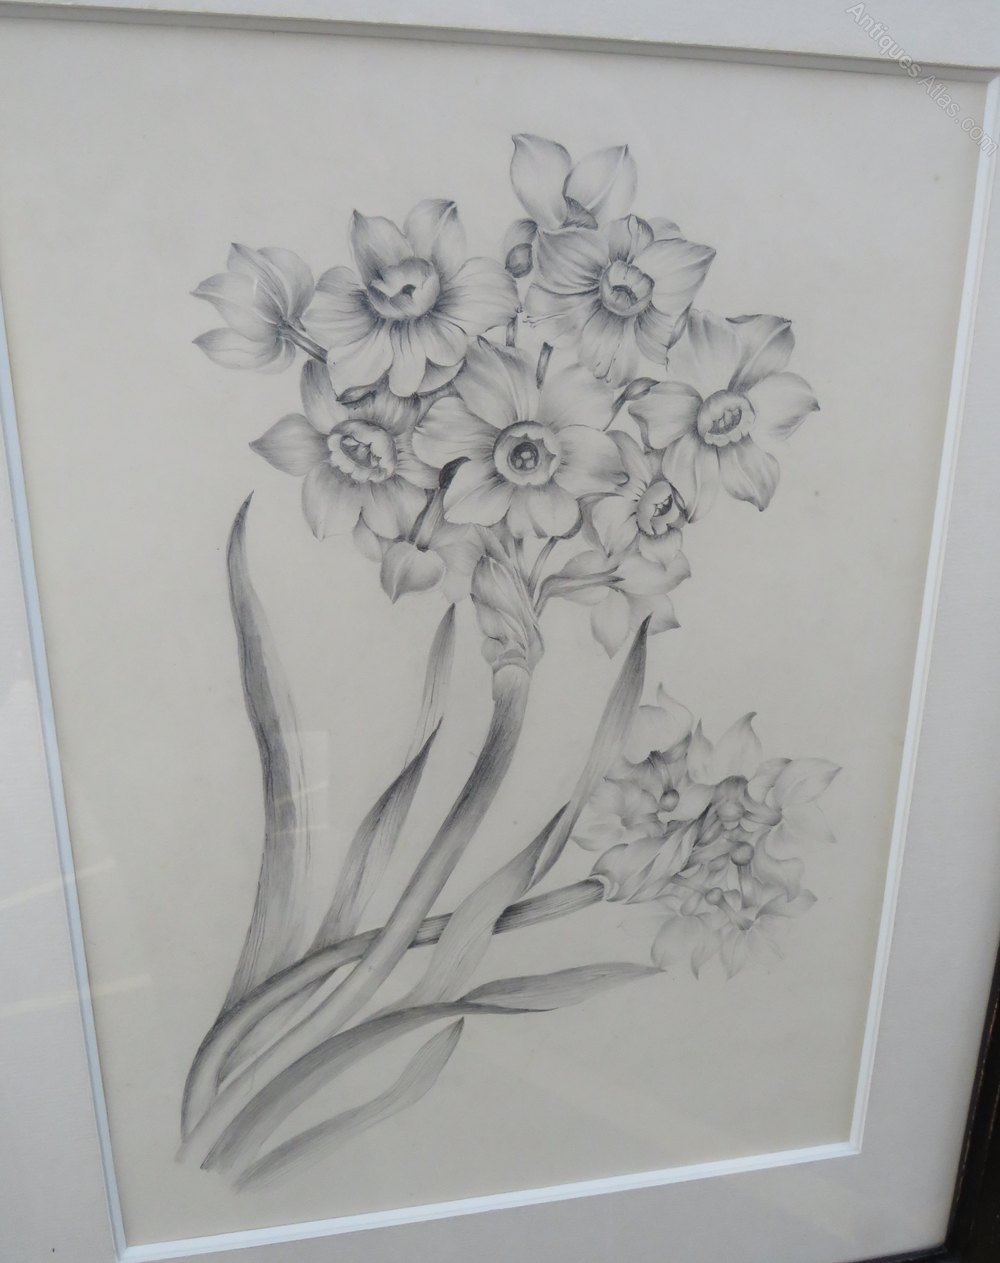 Antique framed pencil drawing picture of daffodils